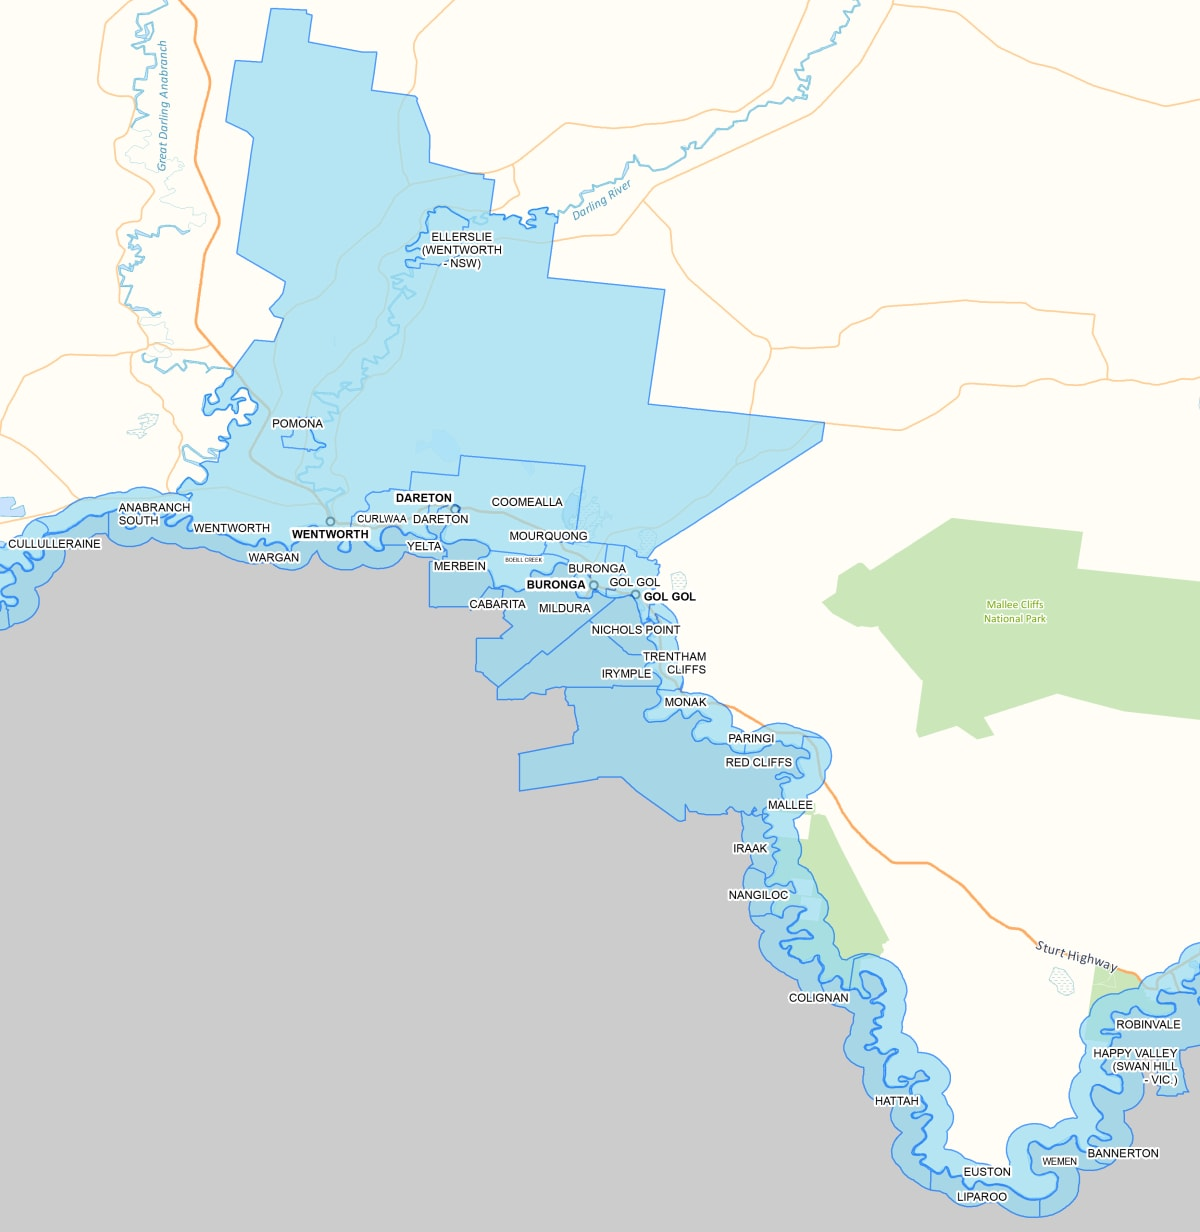 Are You In The Nsw Border Zone Here S How To Check